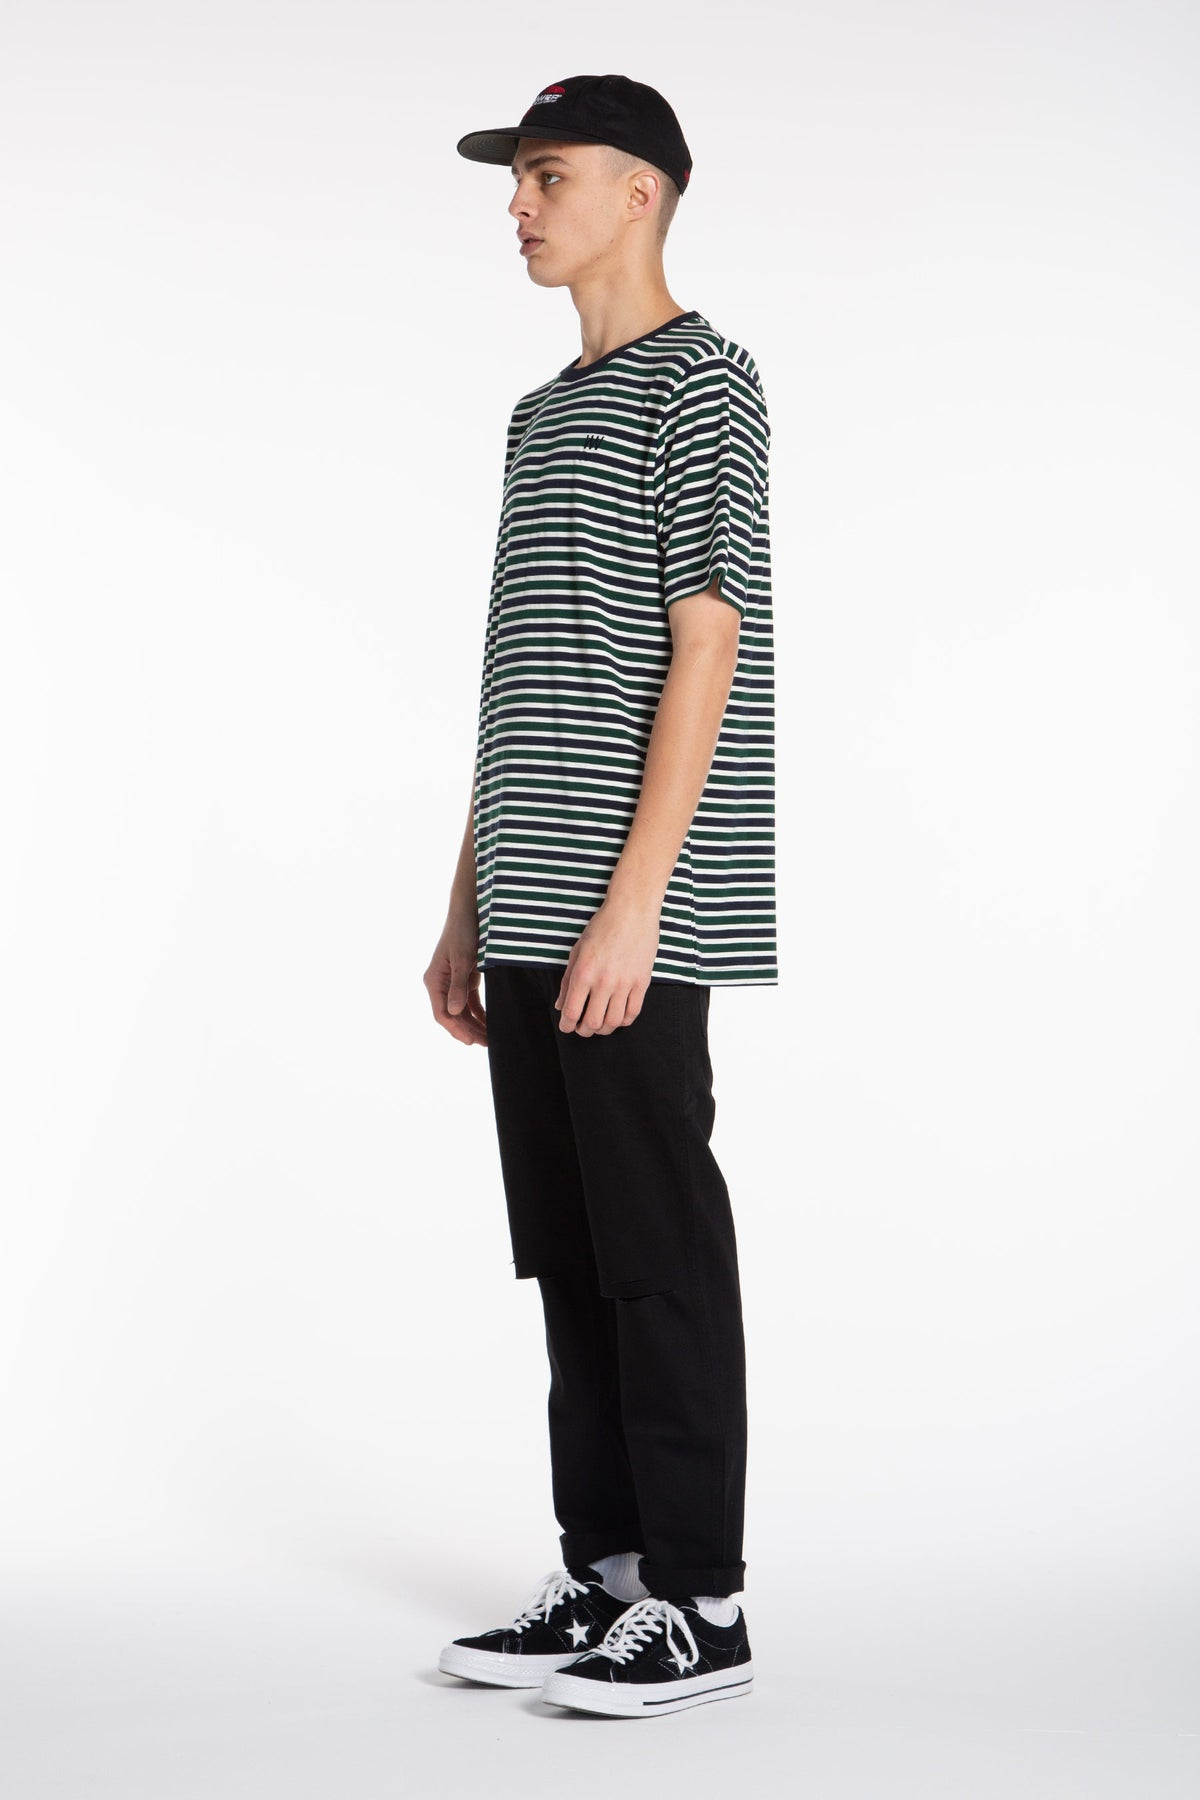 Triple U Stripe QRS Tee - Navy/Green